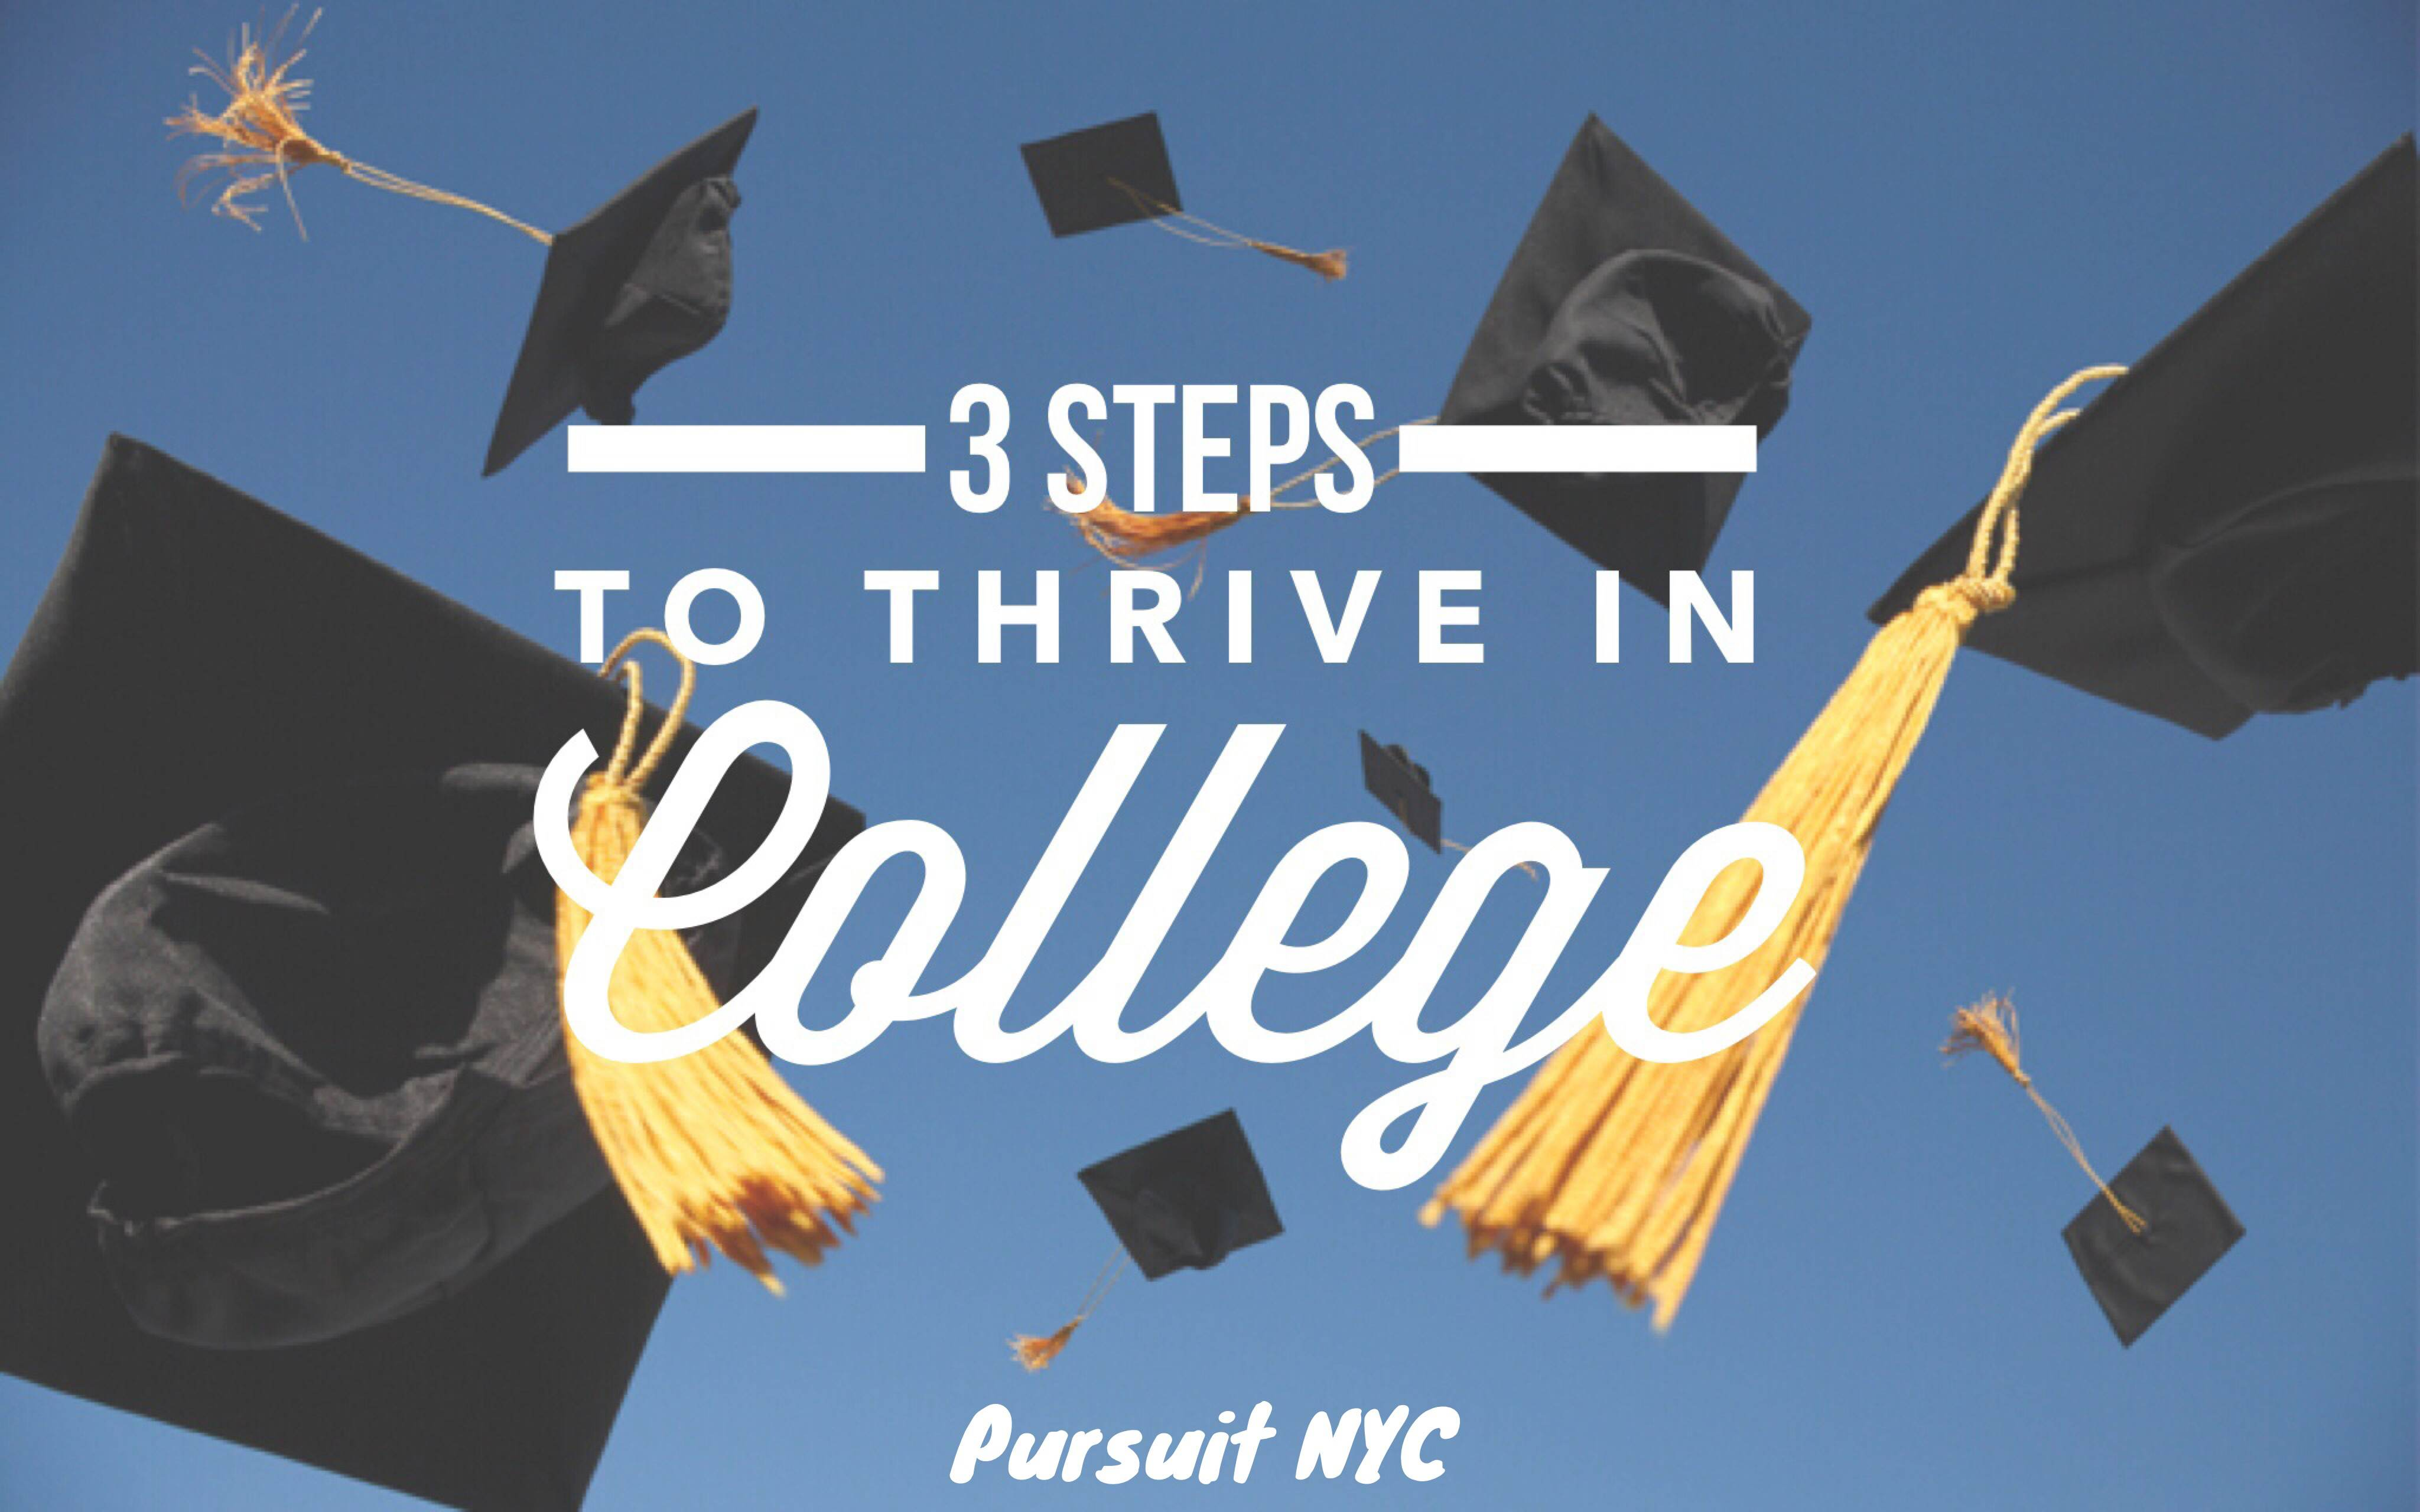 3 Steps to Help You Thrive in College